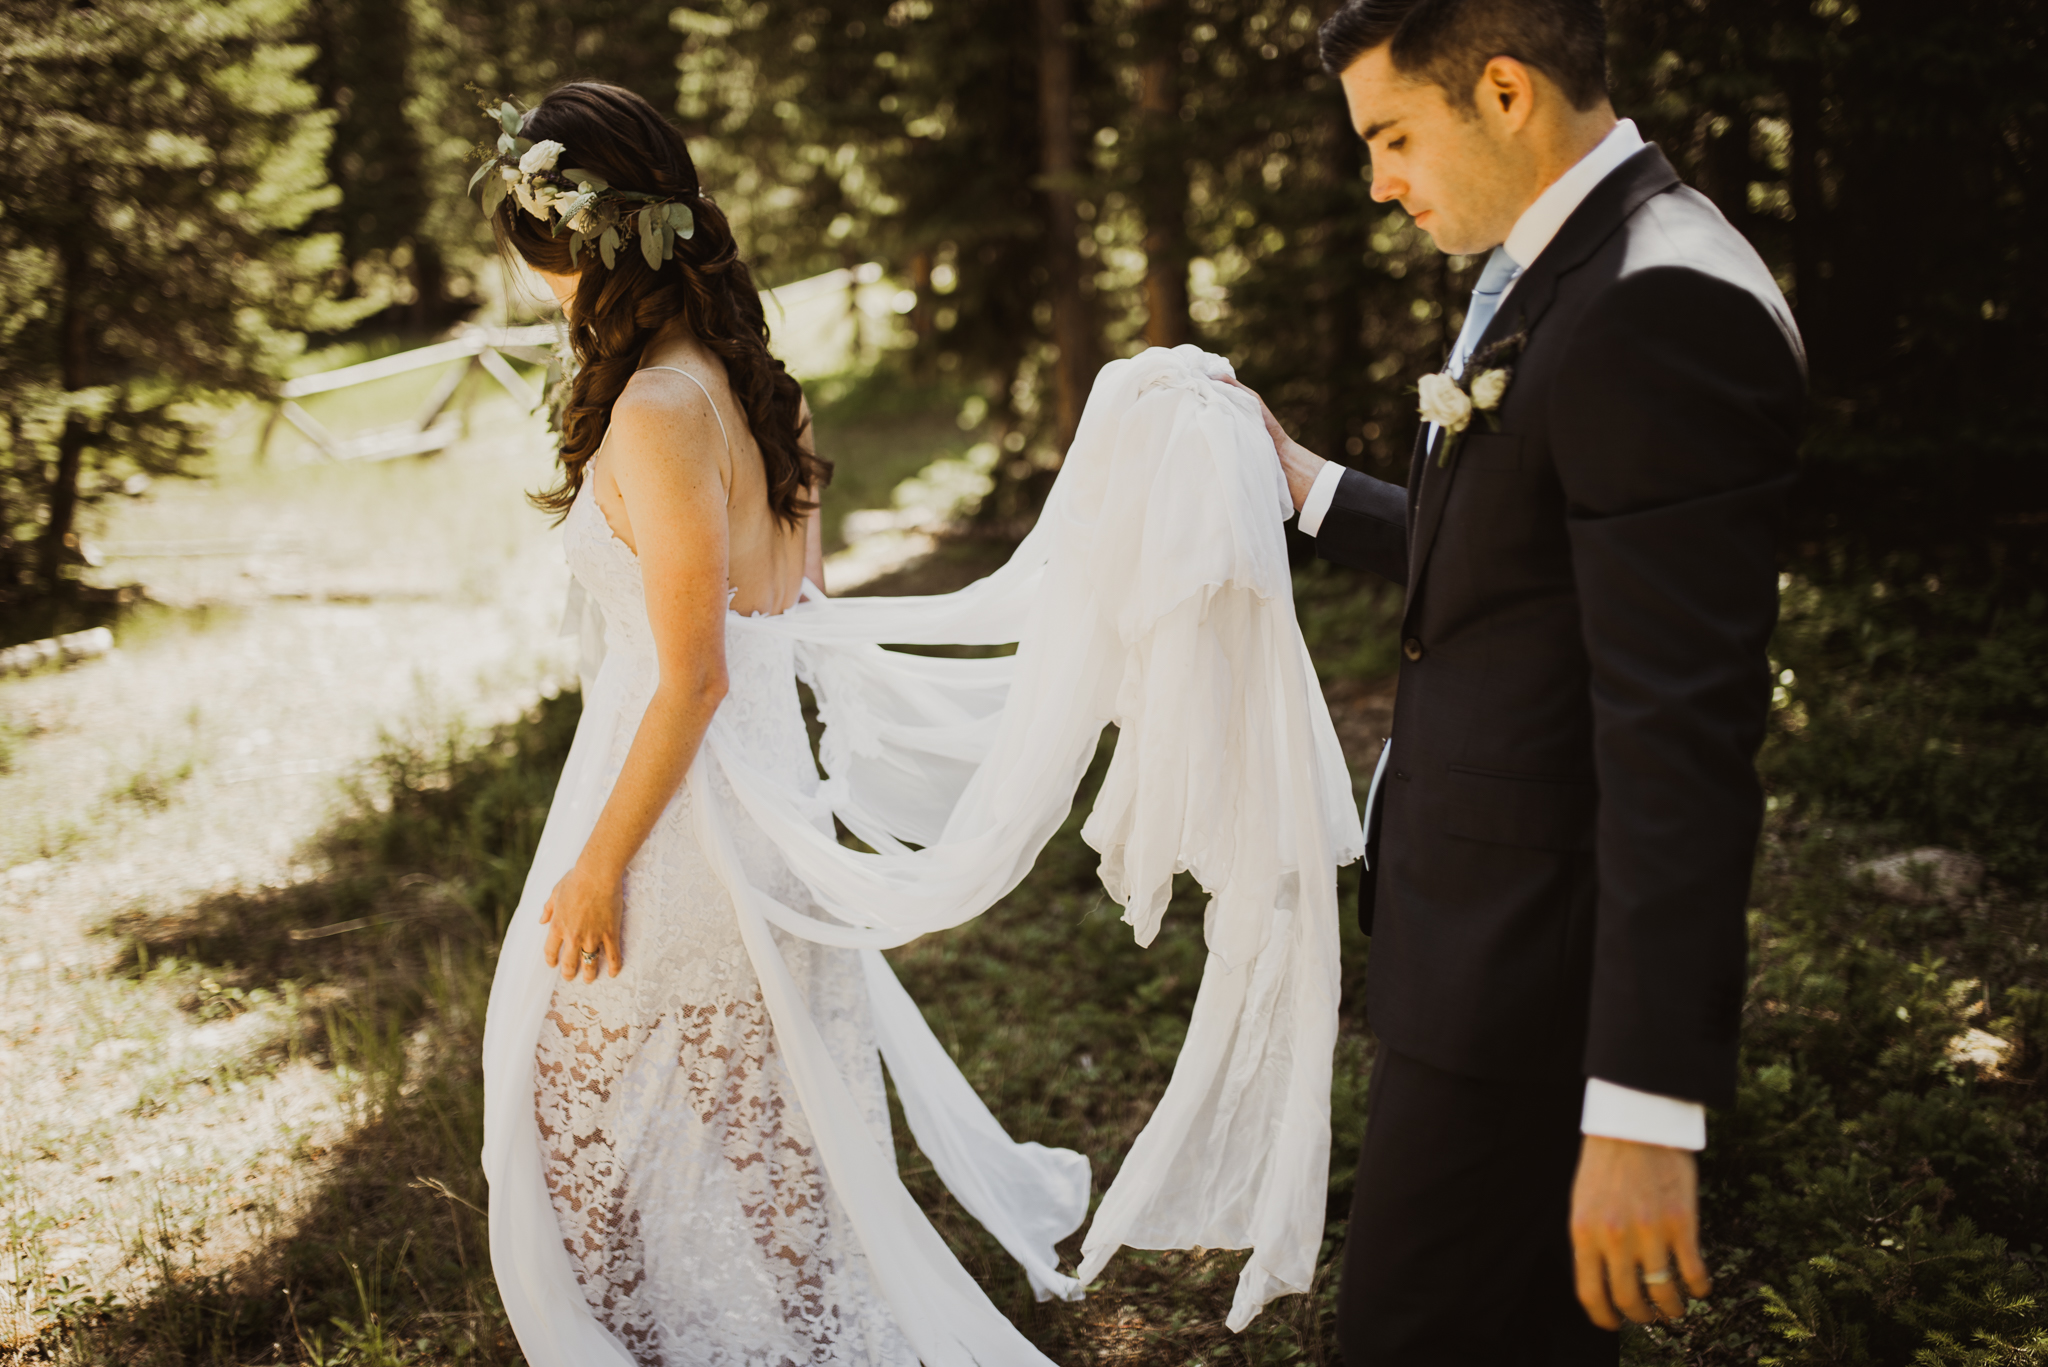 ©Isaiah + Taylor Photography - Estes National Park Adventure Elopement, Colorado Rockies-66.jpg